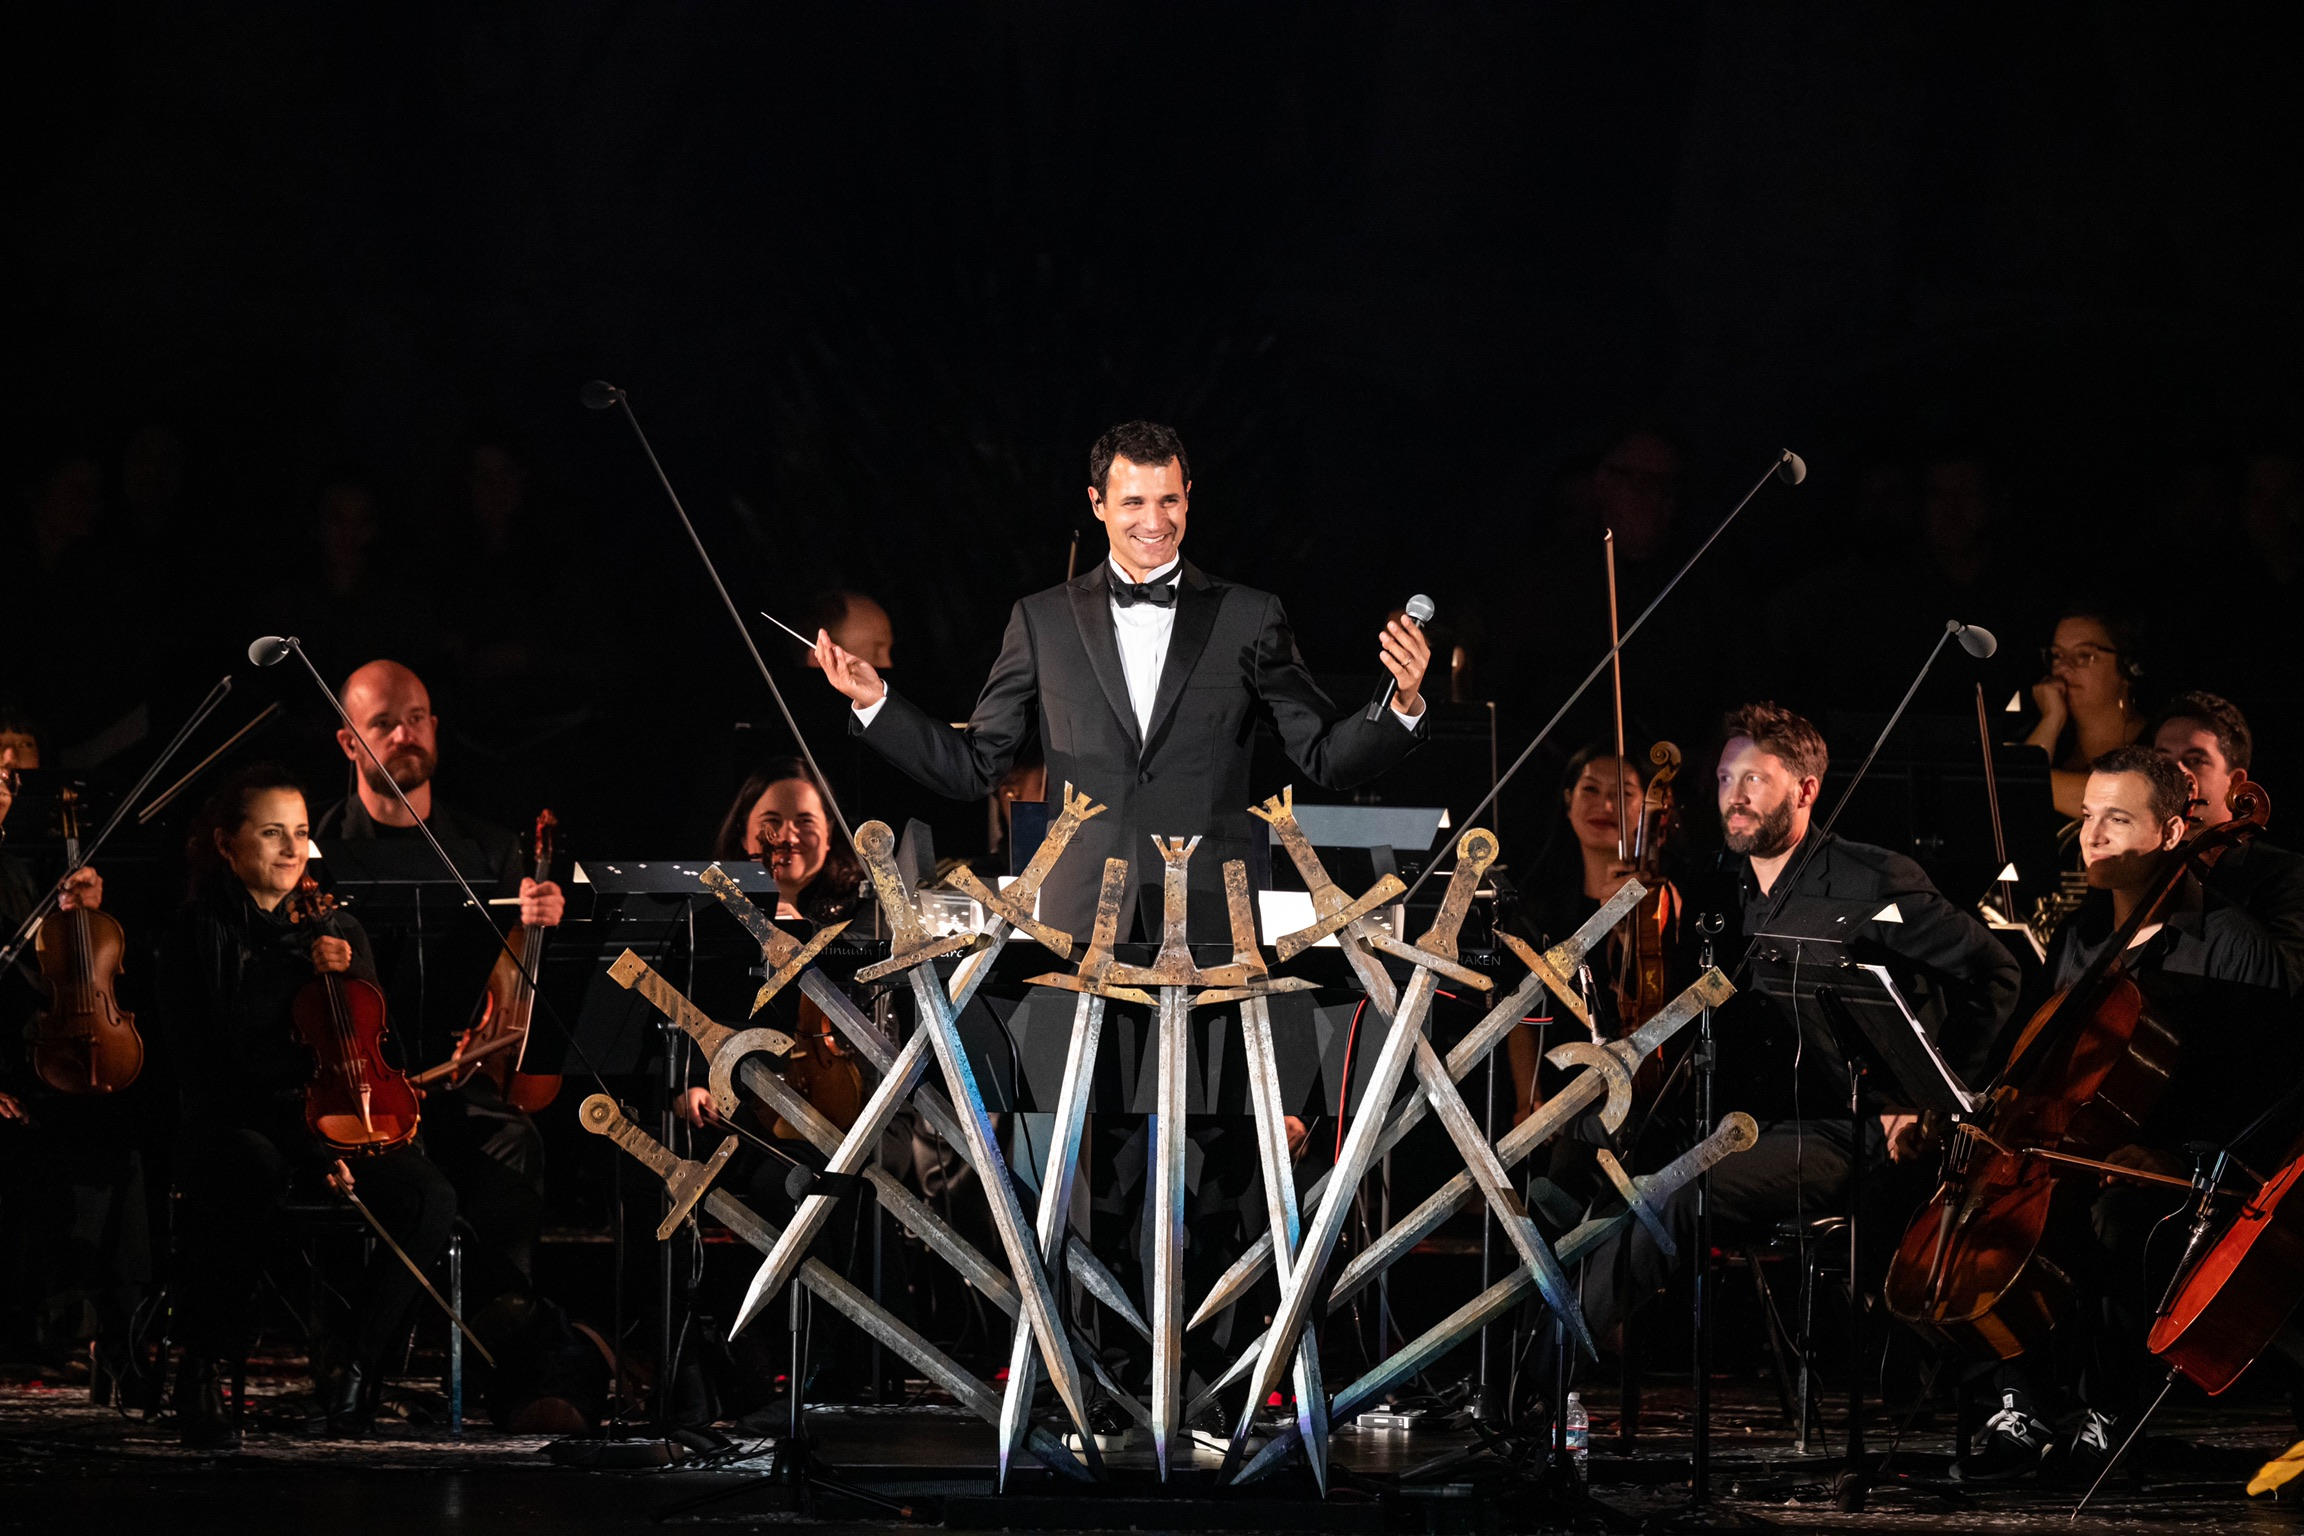 Game of Thrones Live Concert Experience: Ramin Djawadi 10/5/19. Photo by Andrés Jiménez. Courtesy of the artist. Used with permission.